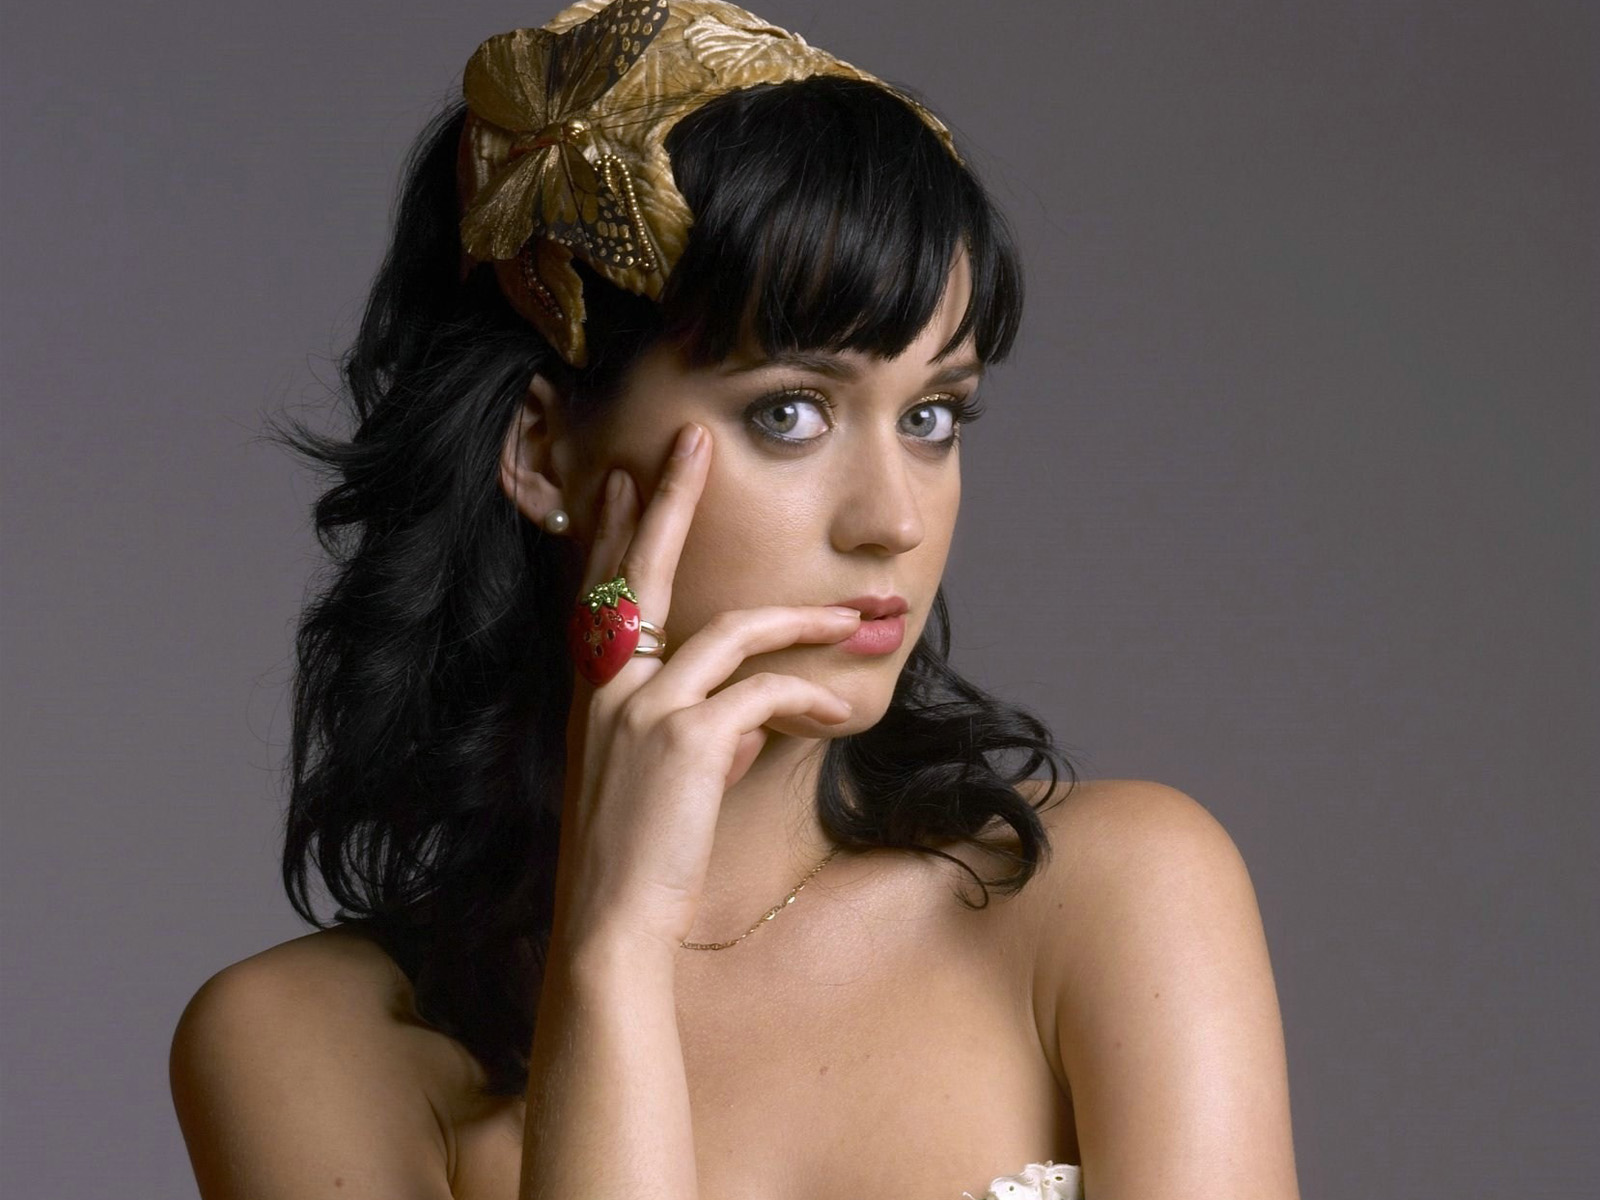 Katy Perry Hair Styles: 10 Colorful Katy Perry Hairstyles